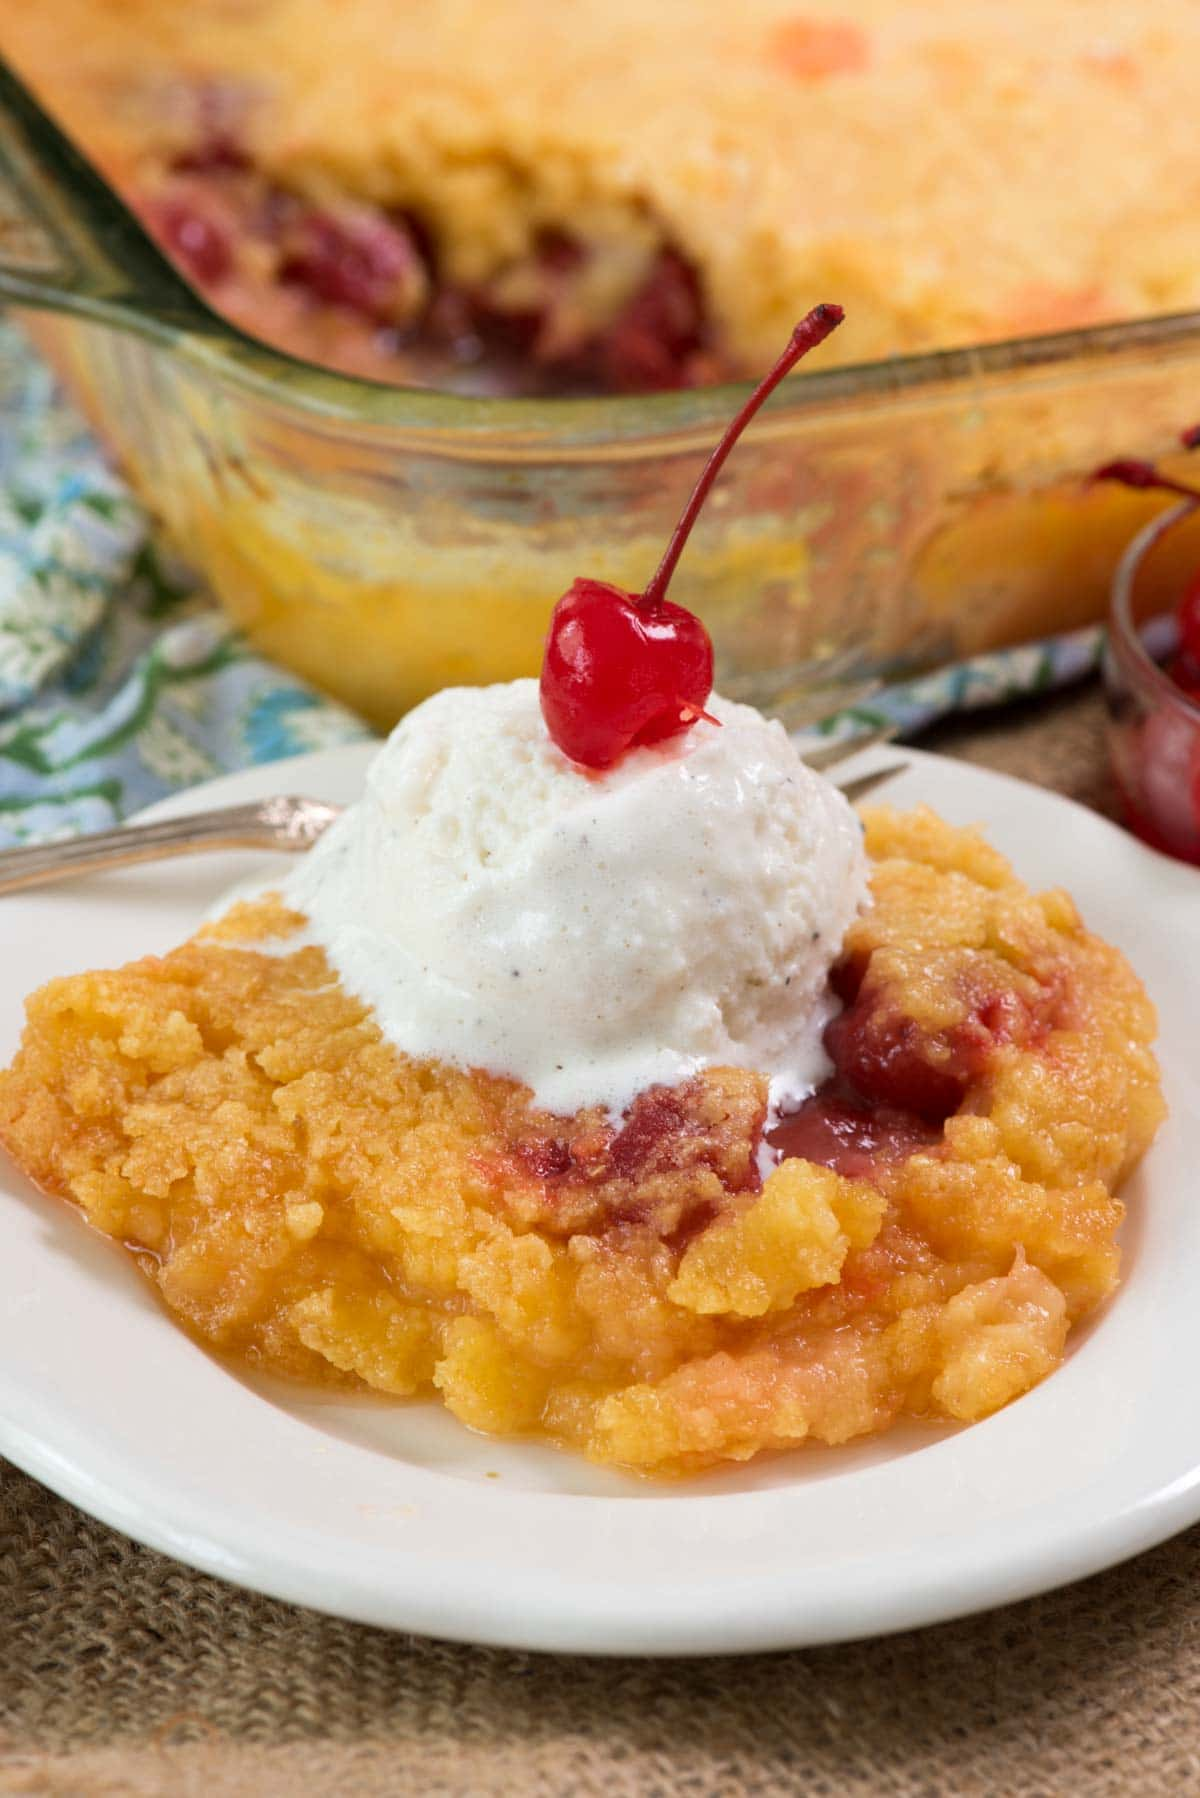 Easiest Pineapple Upside Down Cake